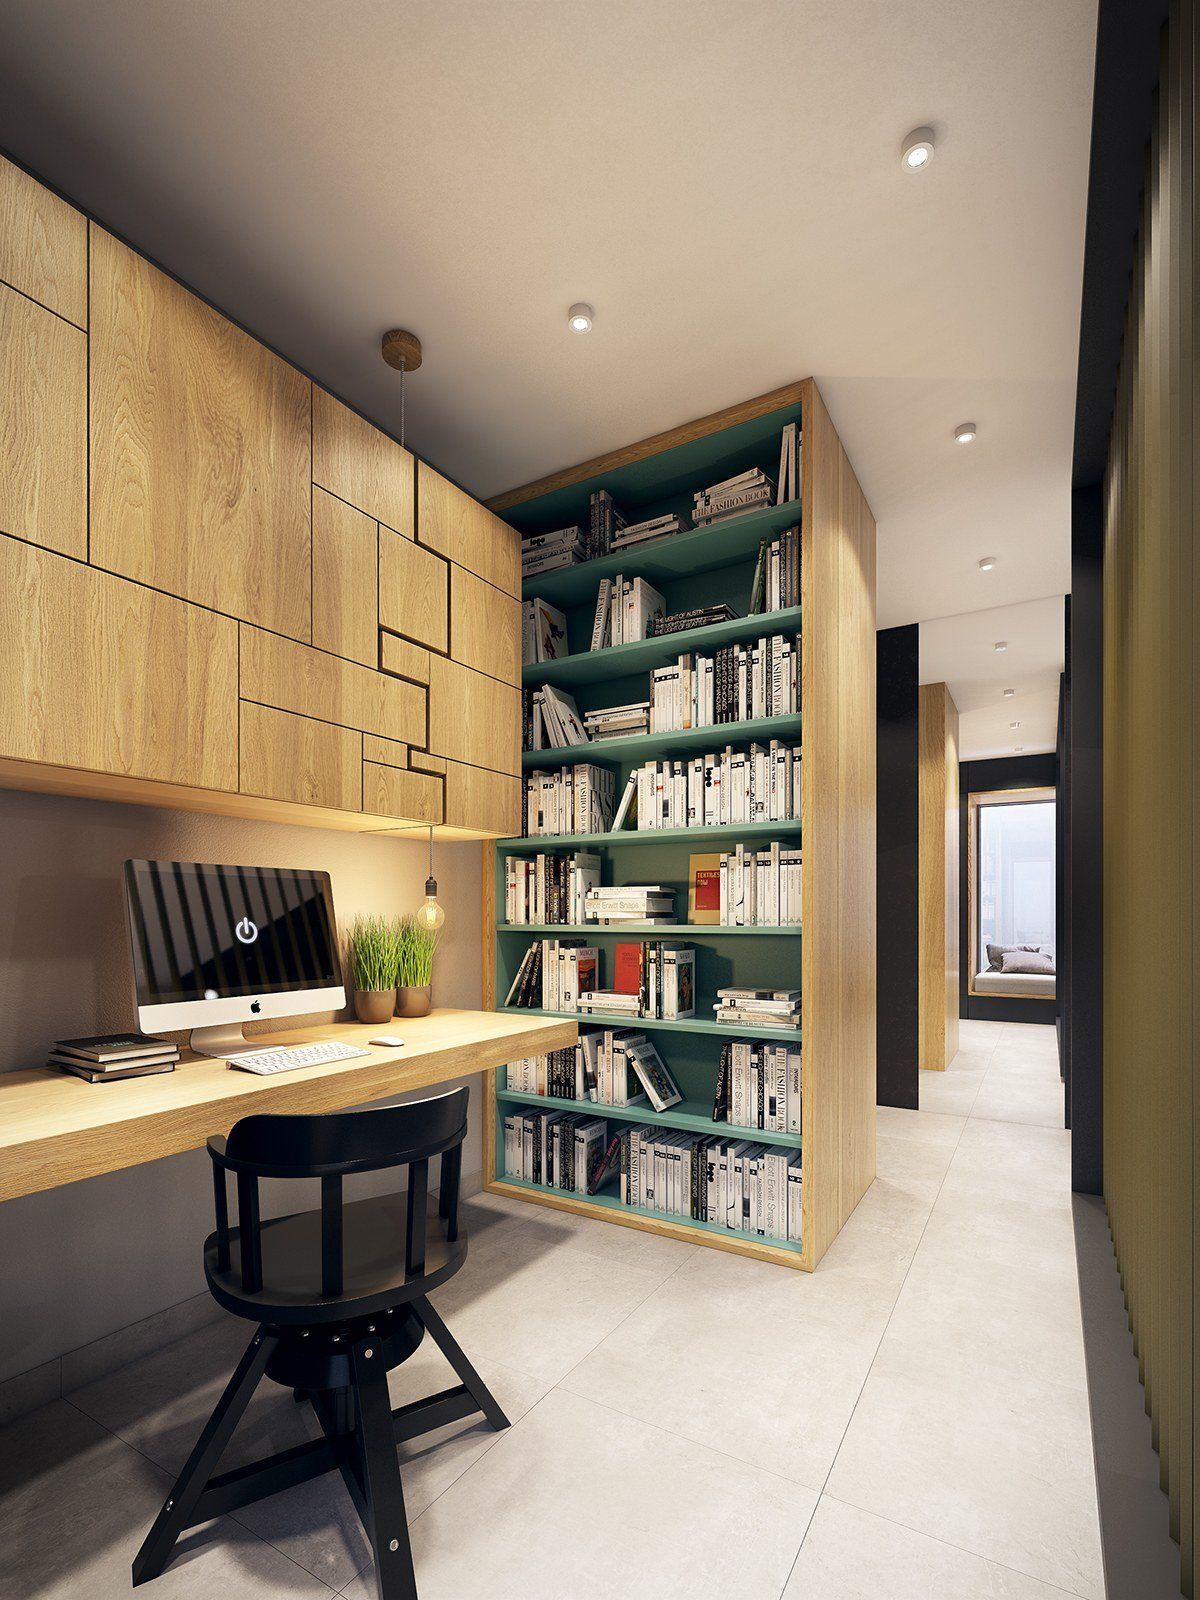 Homedesigning via inspiring home office http ift also apartmentshowcase rh pinterest